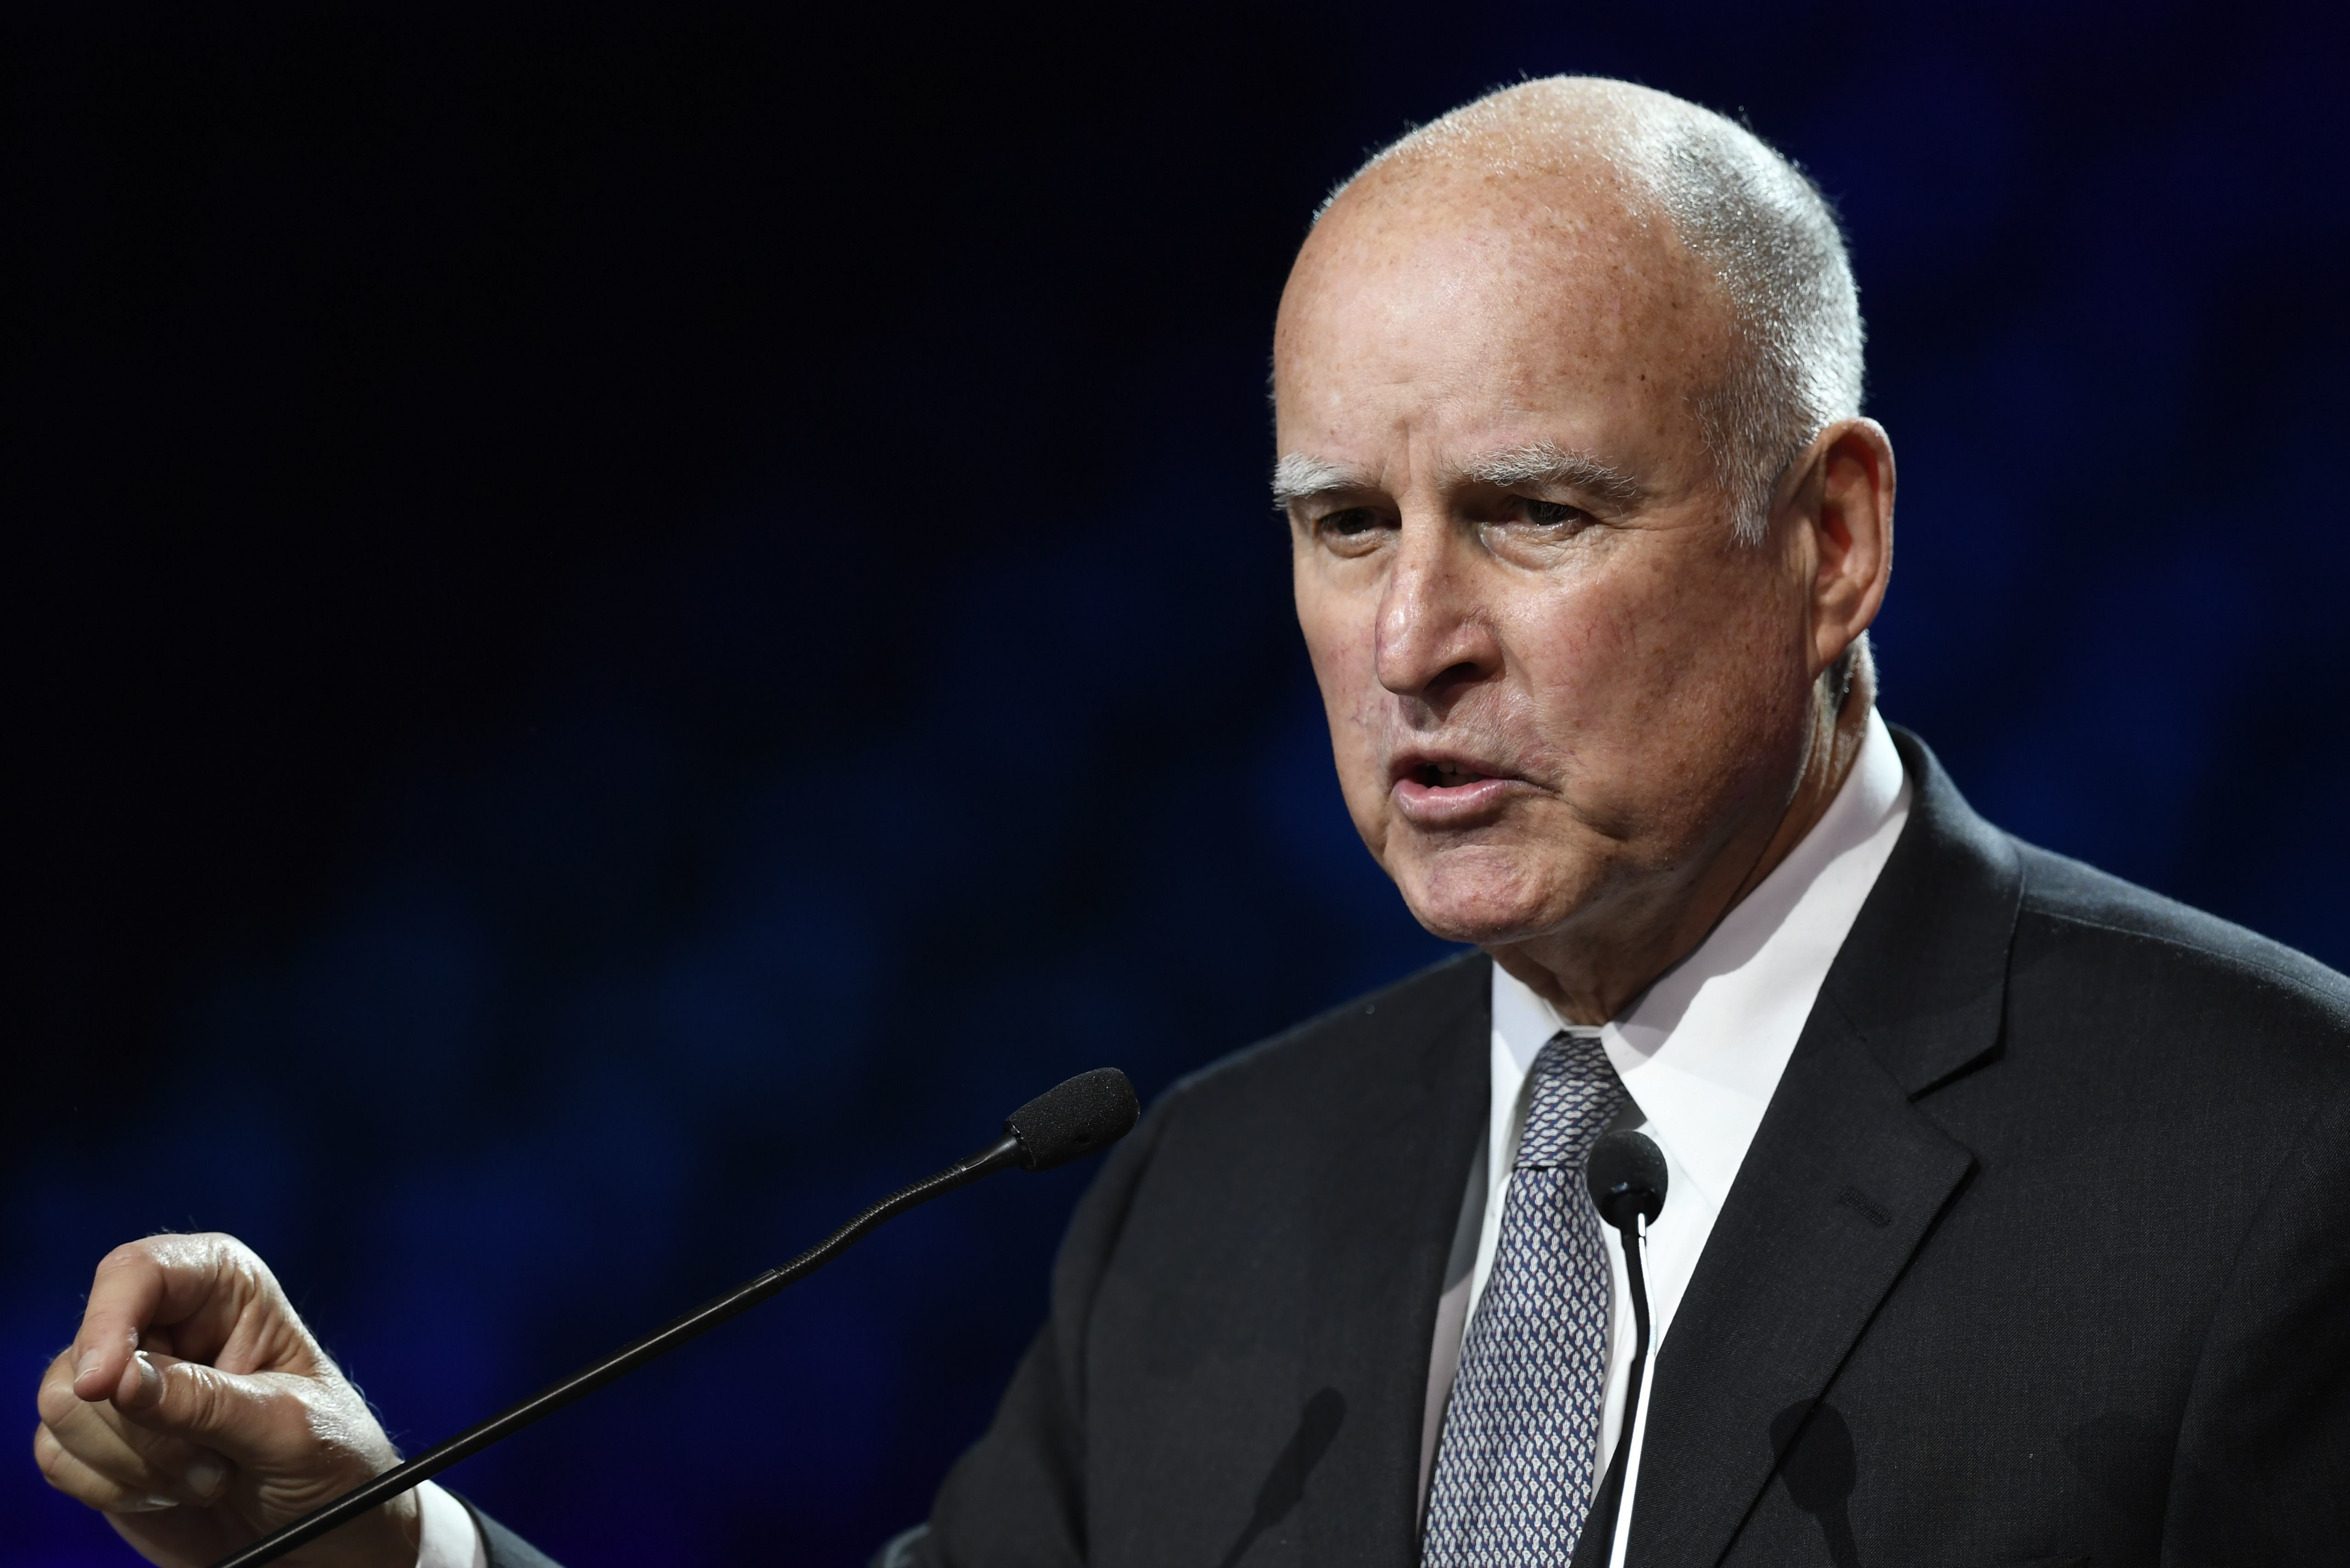 Governor of California Jerry Brown speaks during a panel conference at the One Planet Summit on December 12, 2017, at La Seine Musicale venue on l'ile Seguin in Boulogne-Billancourt, west of Paris. ?The French President hosts 50 world leaders for the 'One Planet Summit', hoping to jump-start the transition to a greener economy two years after the historic Paris agreement to limit climate change. / AFP PHOTO / Eric FEFERBERG        (Photo credit should read ERIC FEFERBERG/AFP/Getty Images)